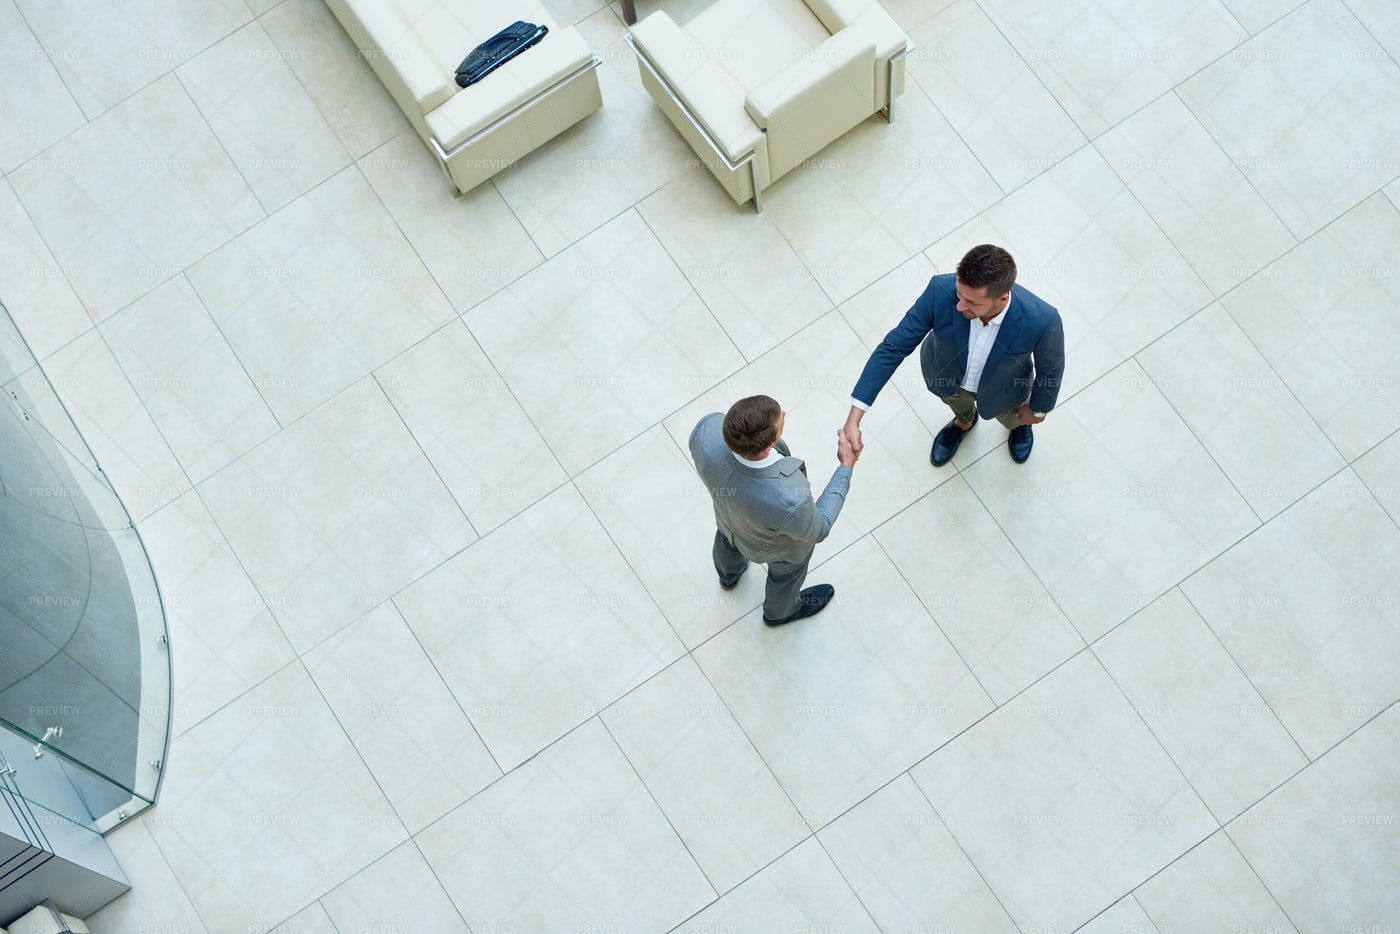 Successful Negotiations Of Business...: Stock Photos